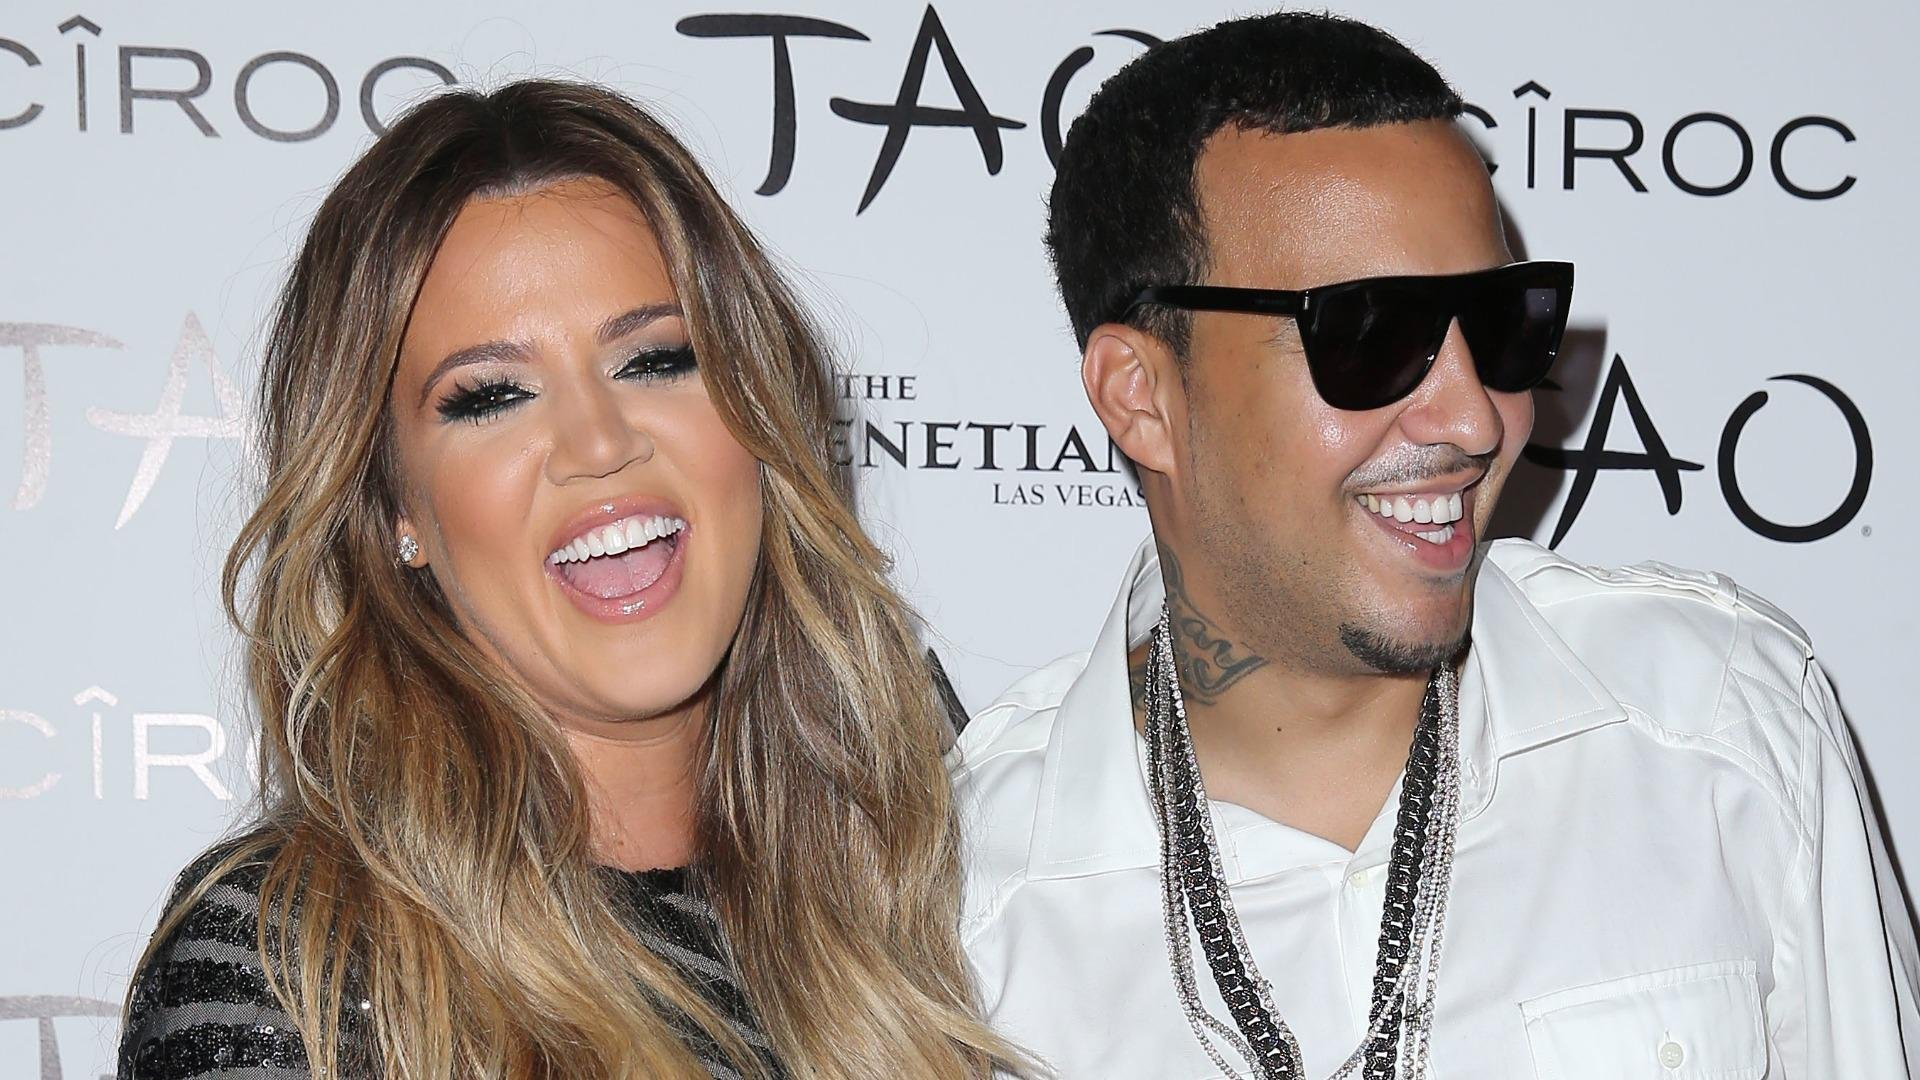 Khloé Kardashian making plans to become a mom to French Montana's baby